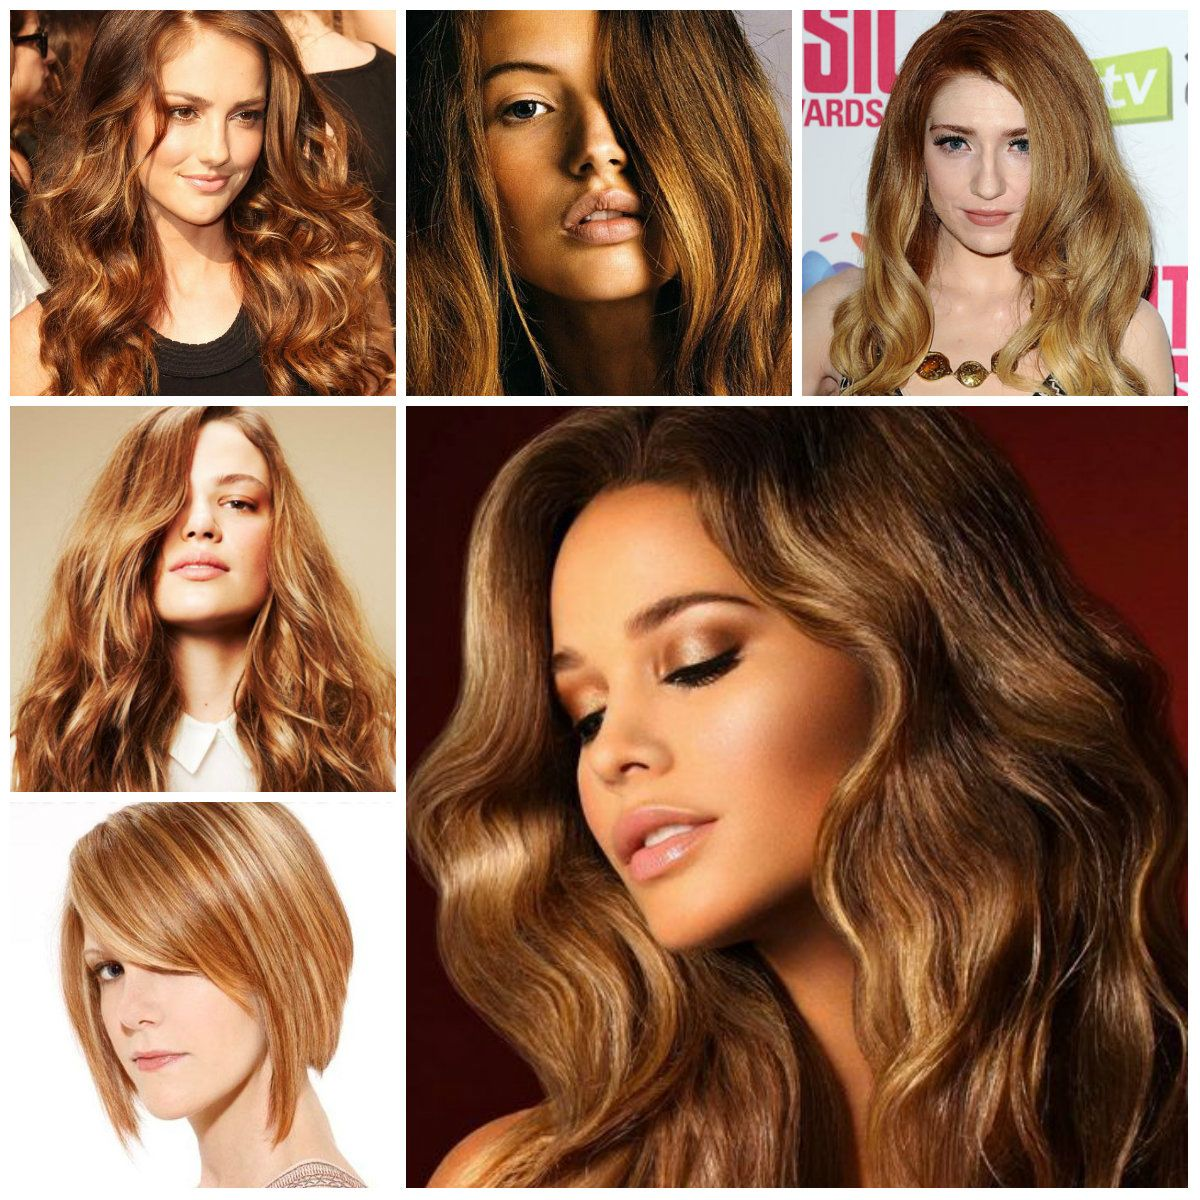 Enjoyable Organic Hair Colors 2016 Trends And Ideas For Your Hair Just Short Hairstyles Gunalazisus